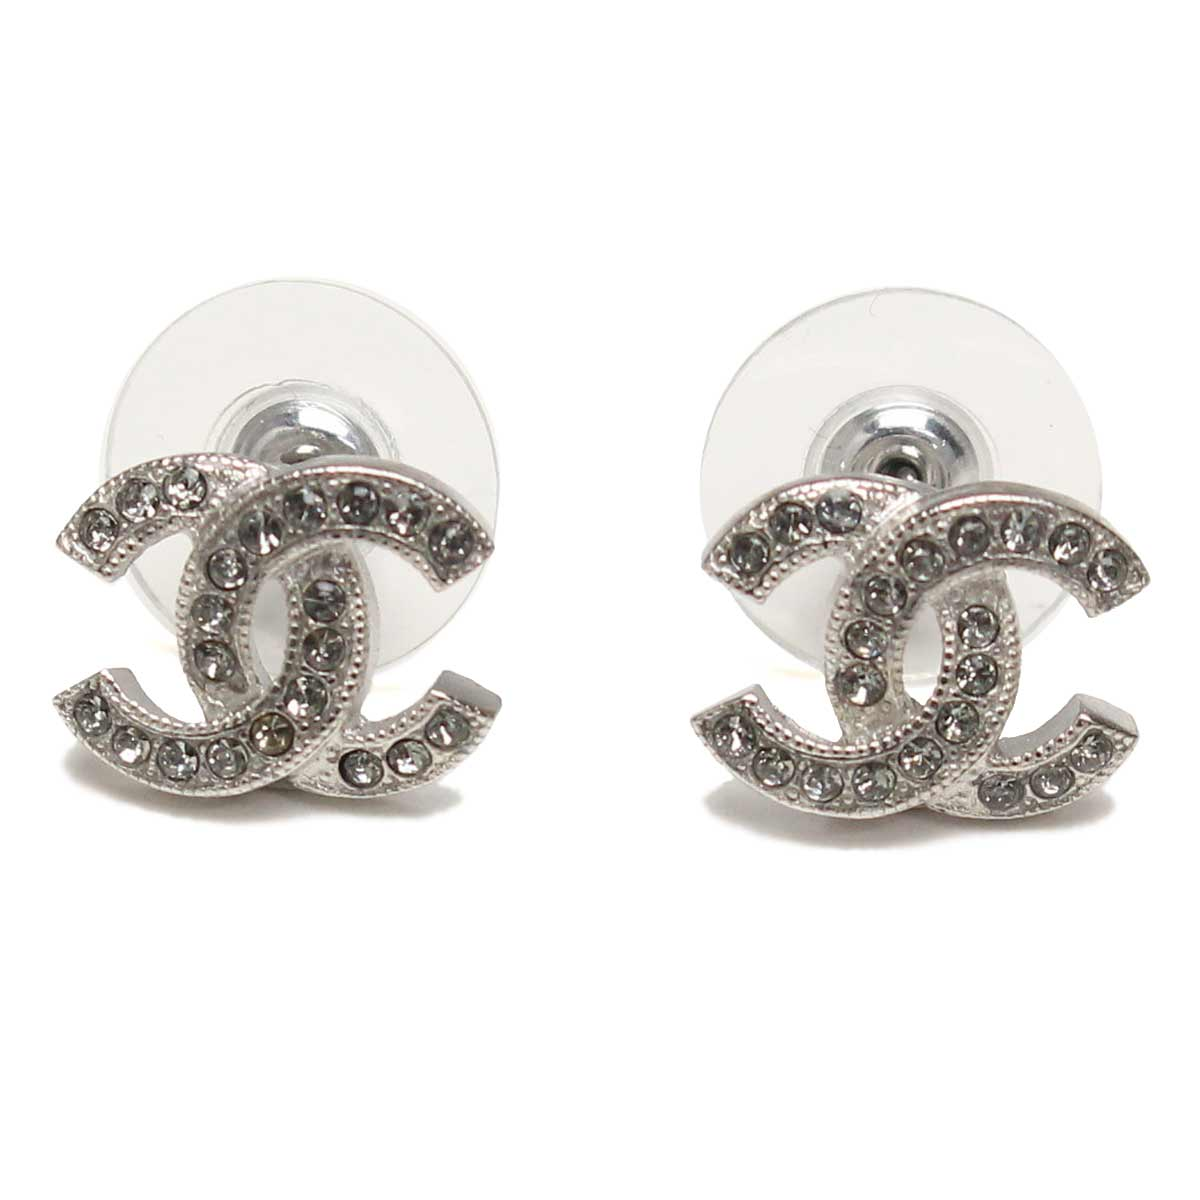 Hit The Total Brand Whole Chanel Earrings A88429 Silver And Zirconia Taxfree Send By Ems Authentic A New Item Rakuten Global